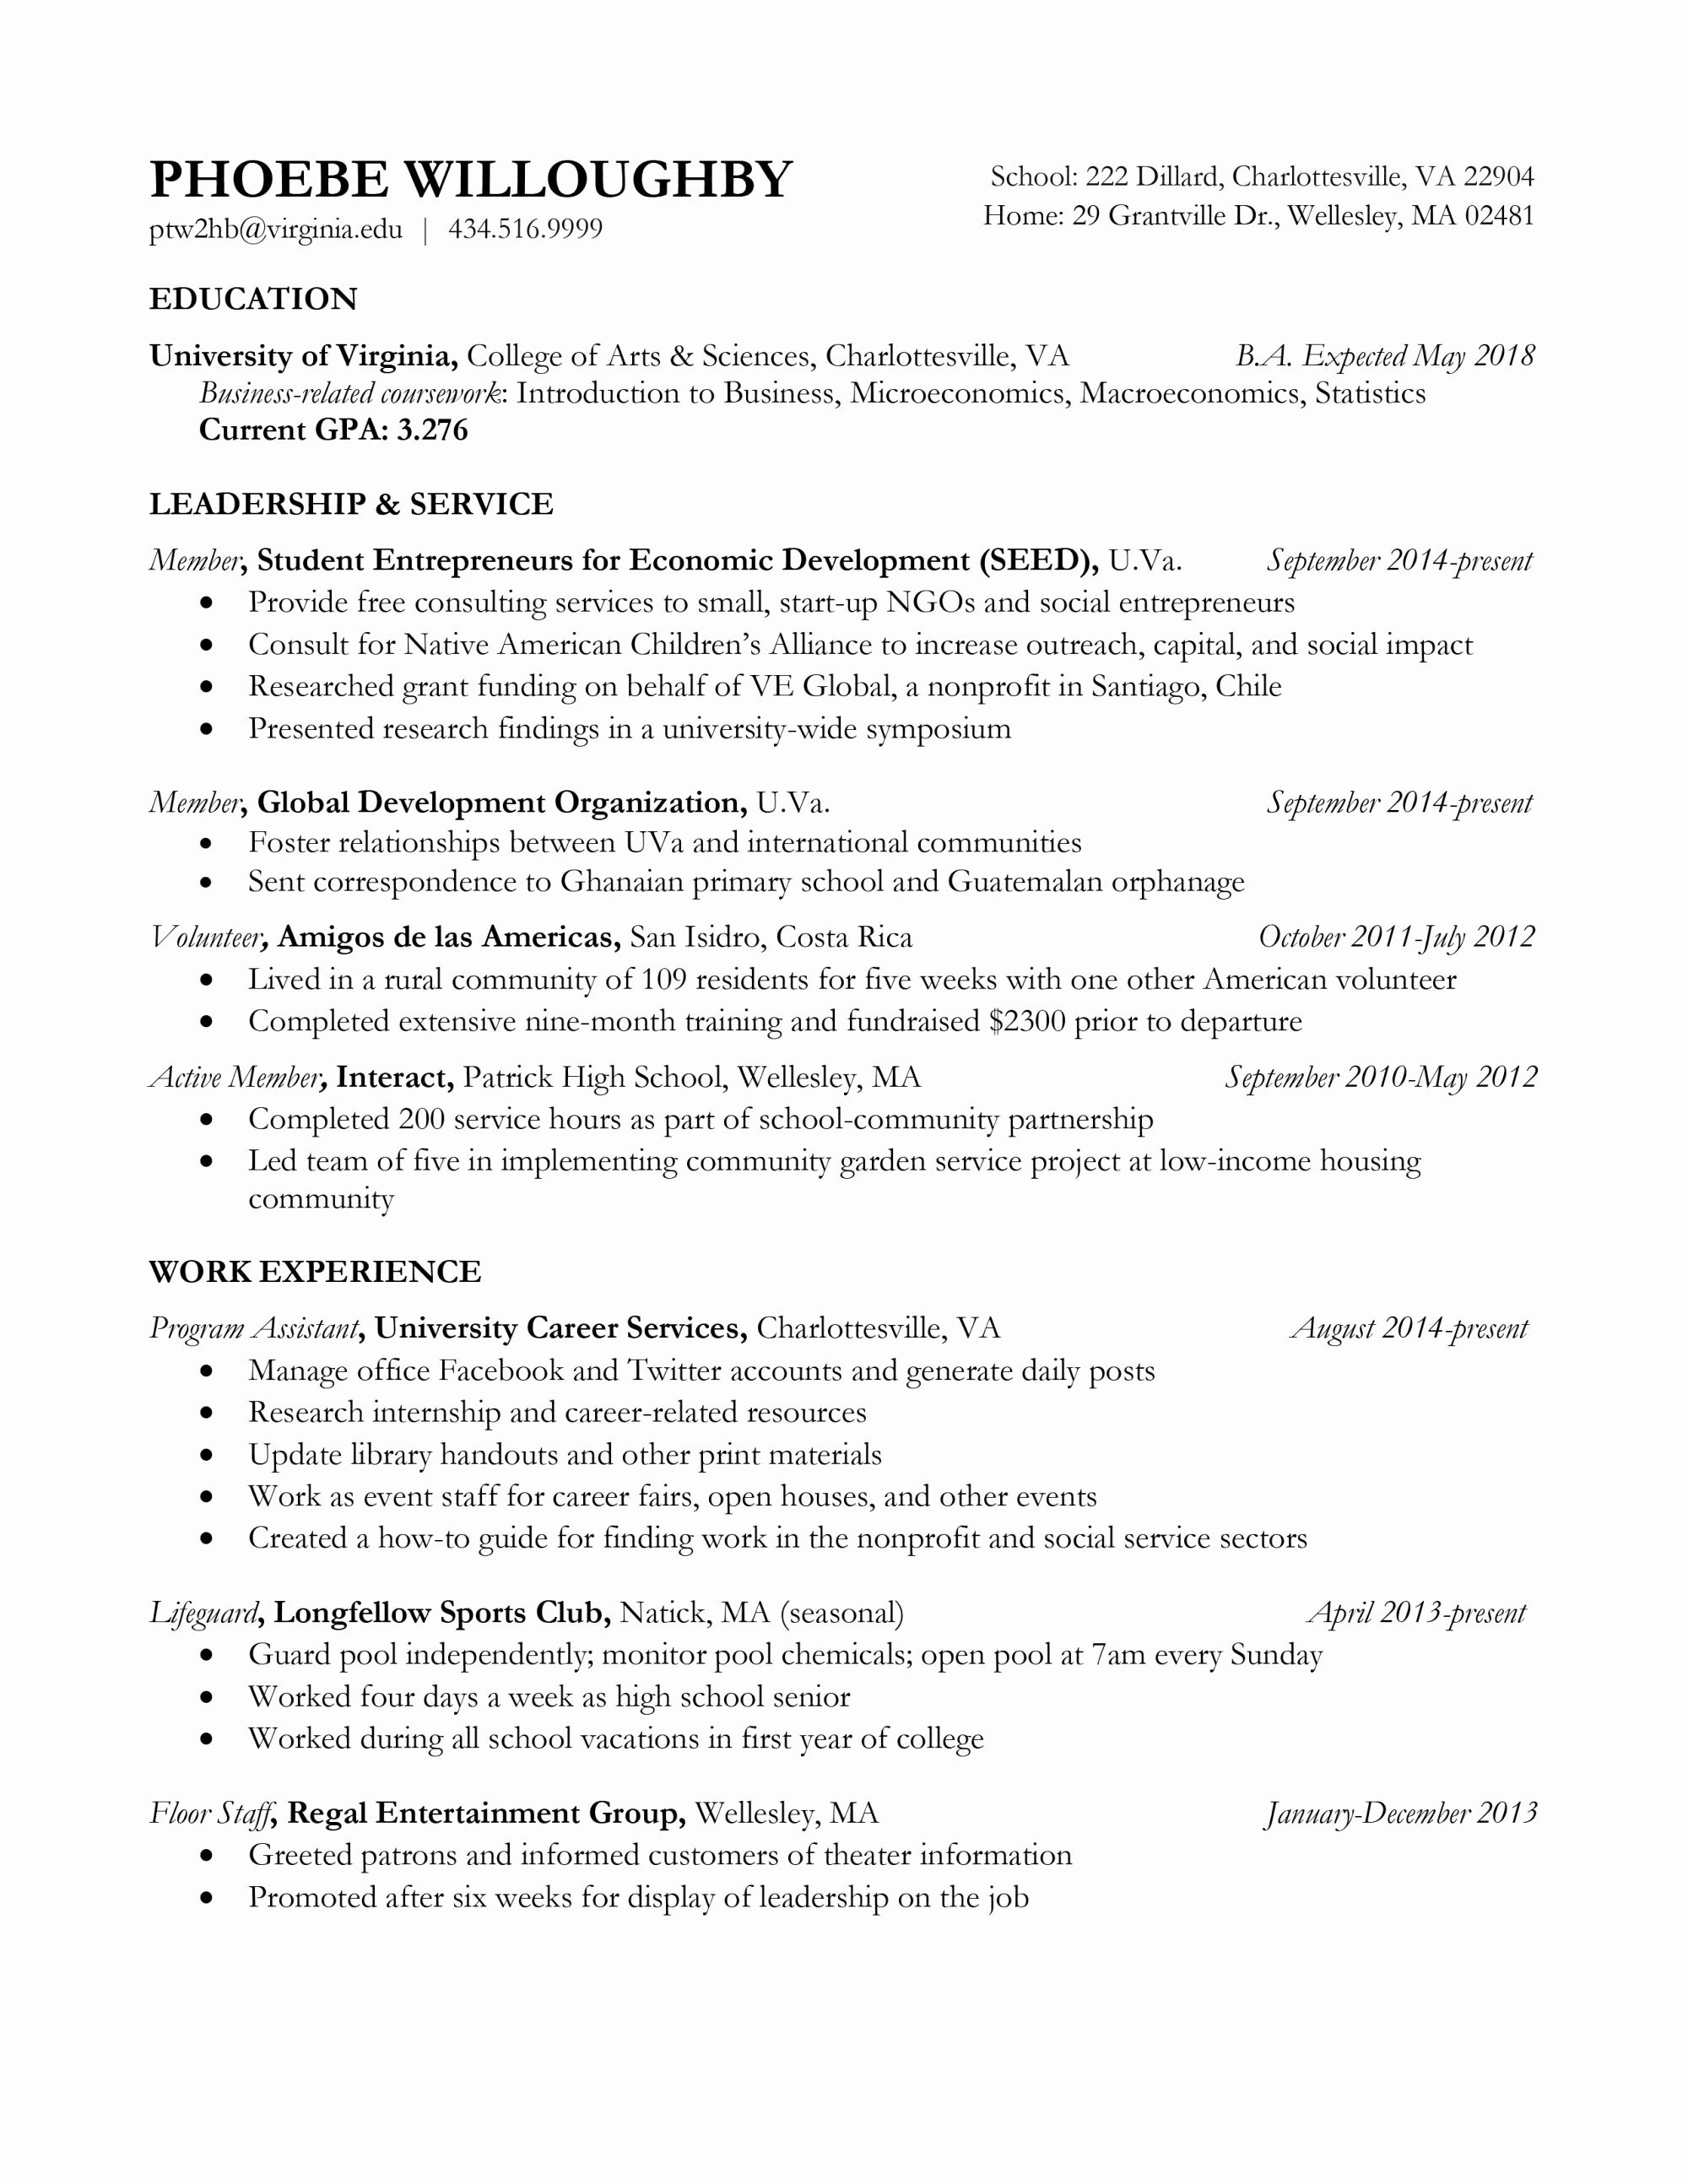 Career Center Resume - Retail Resume Template Free Inspirationa Chef Resume Samples Awesome